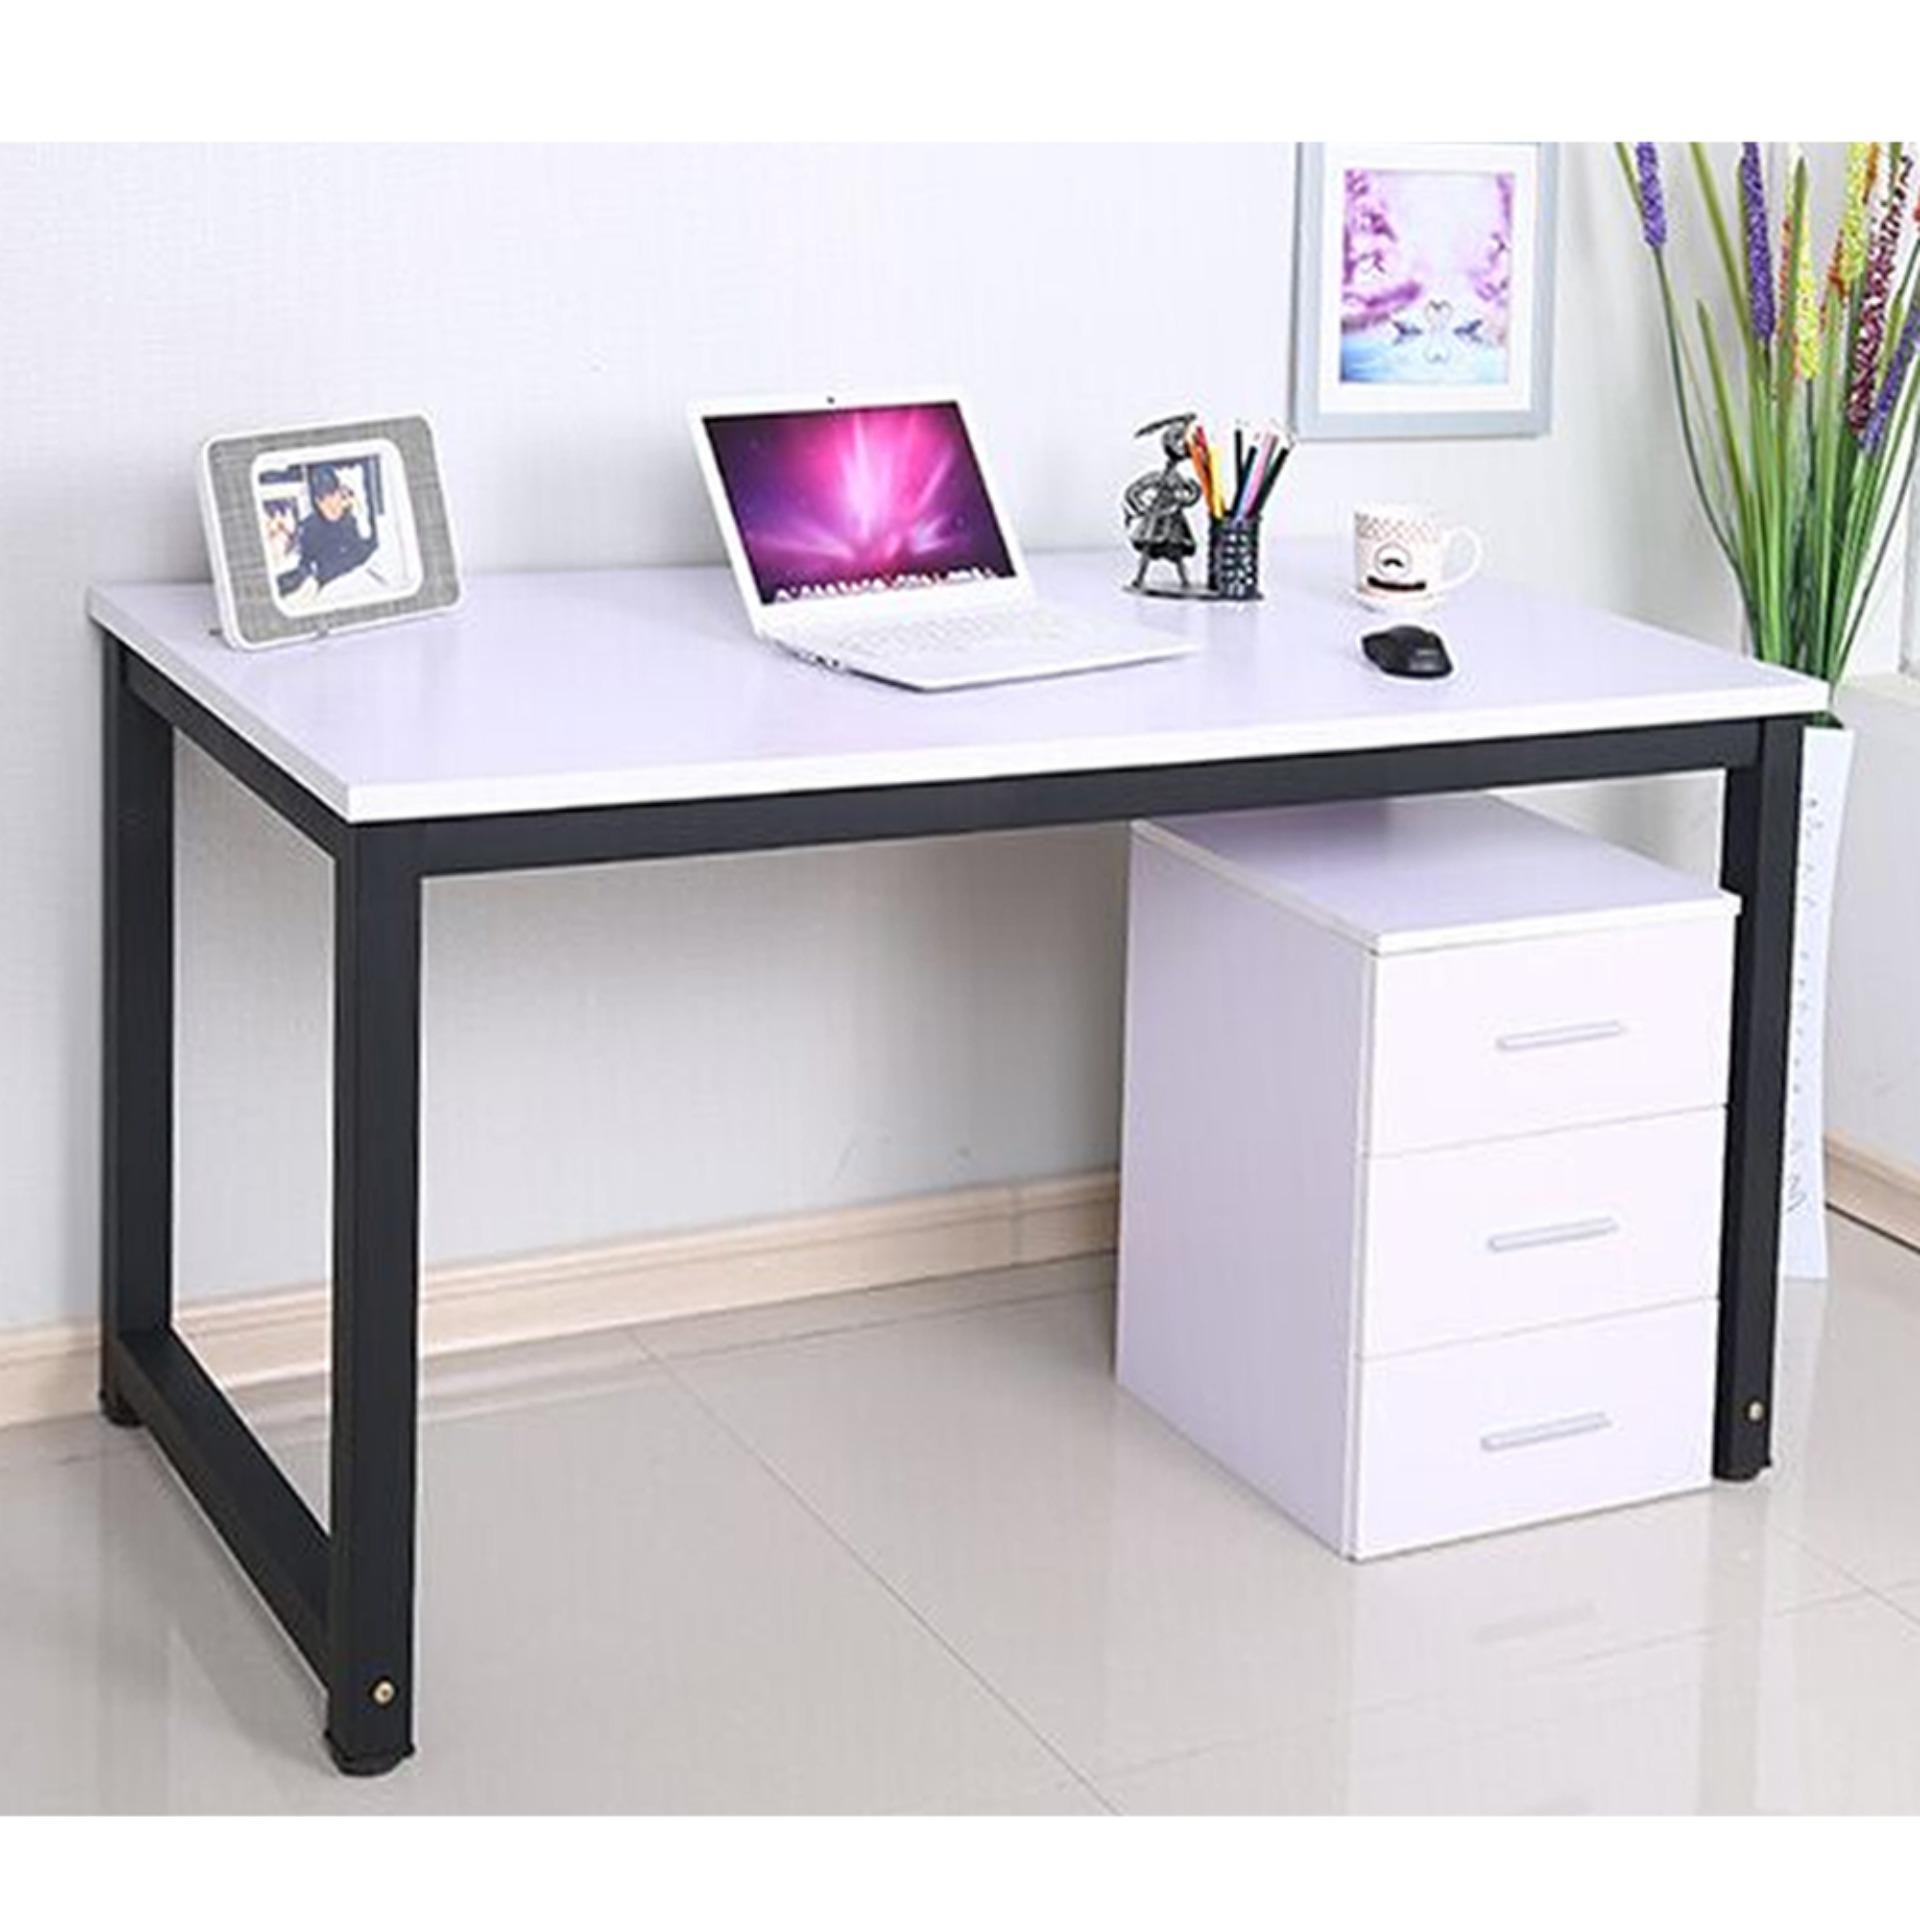 Qoncept Furniture Russell Lavender Table 120x60 (Black)